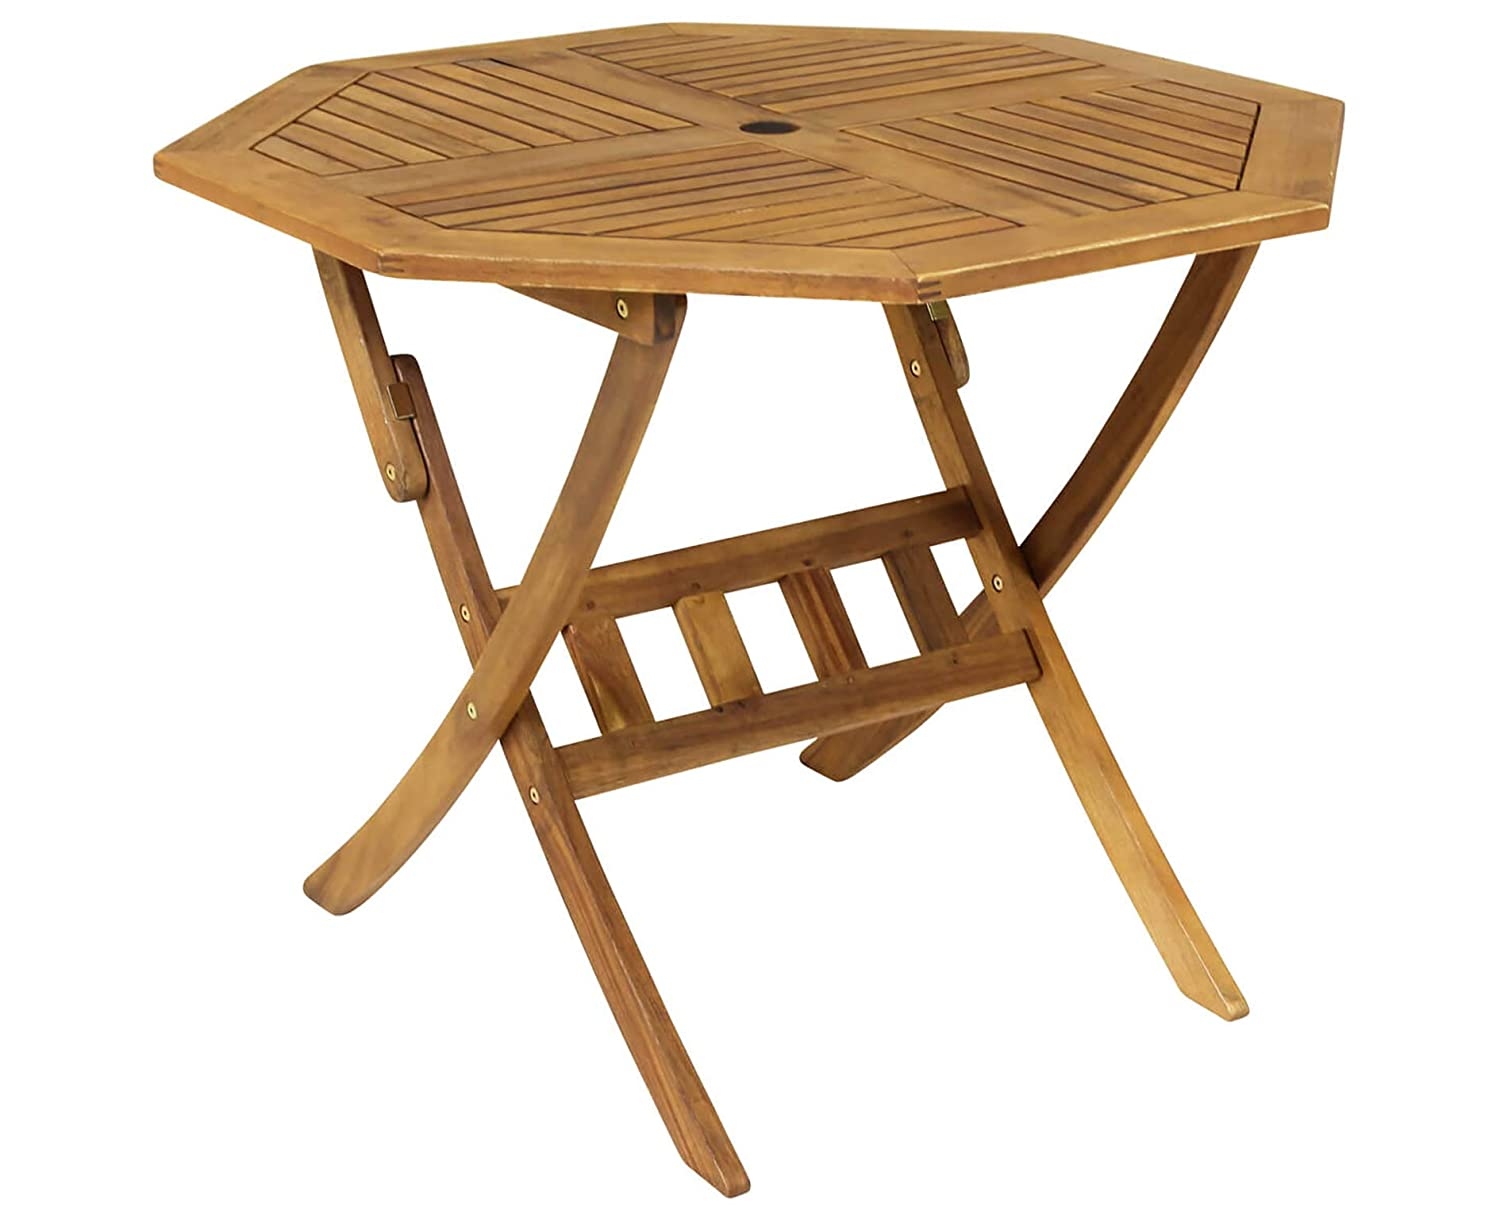 Bentley Garden - Table de Jardin octogonale Pliable - Bois Dur ...